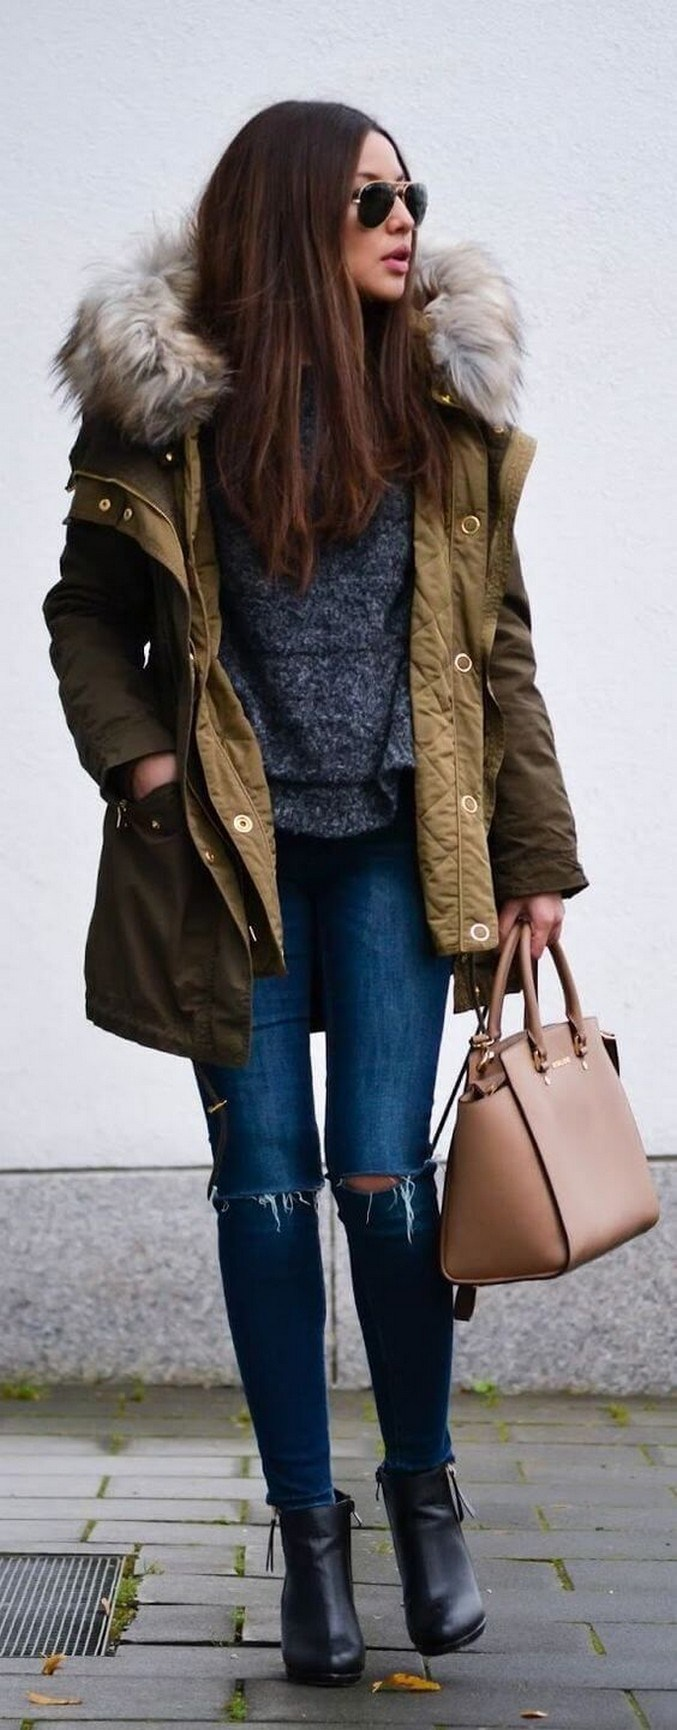 21+ winter outfits ideas for women casual and sexy 9